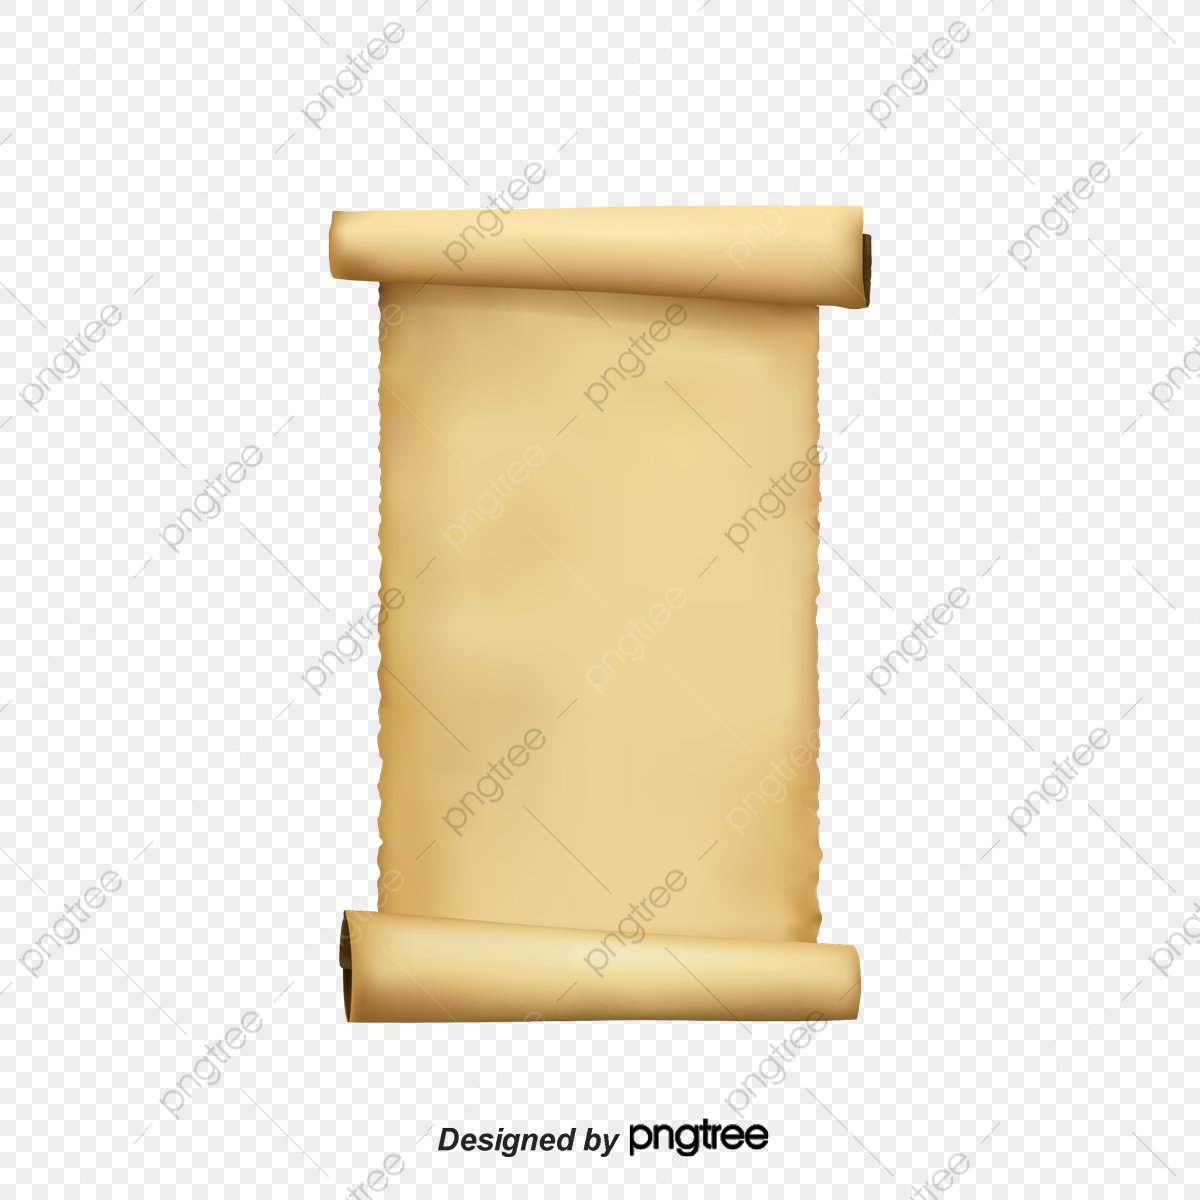 Paper Roll Decoration, Paper Roll, Paper, Old Paper PNG.